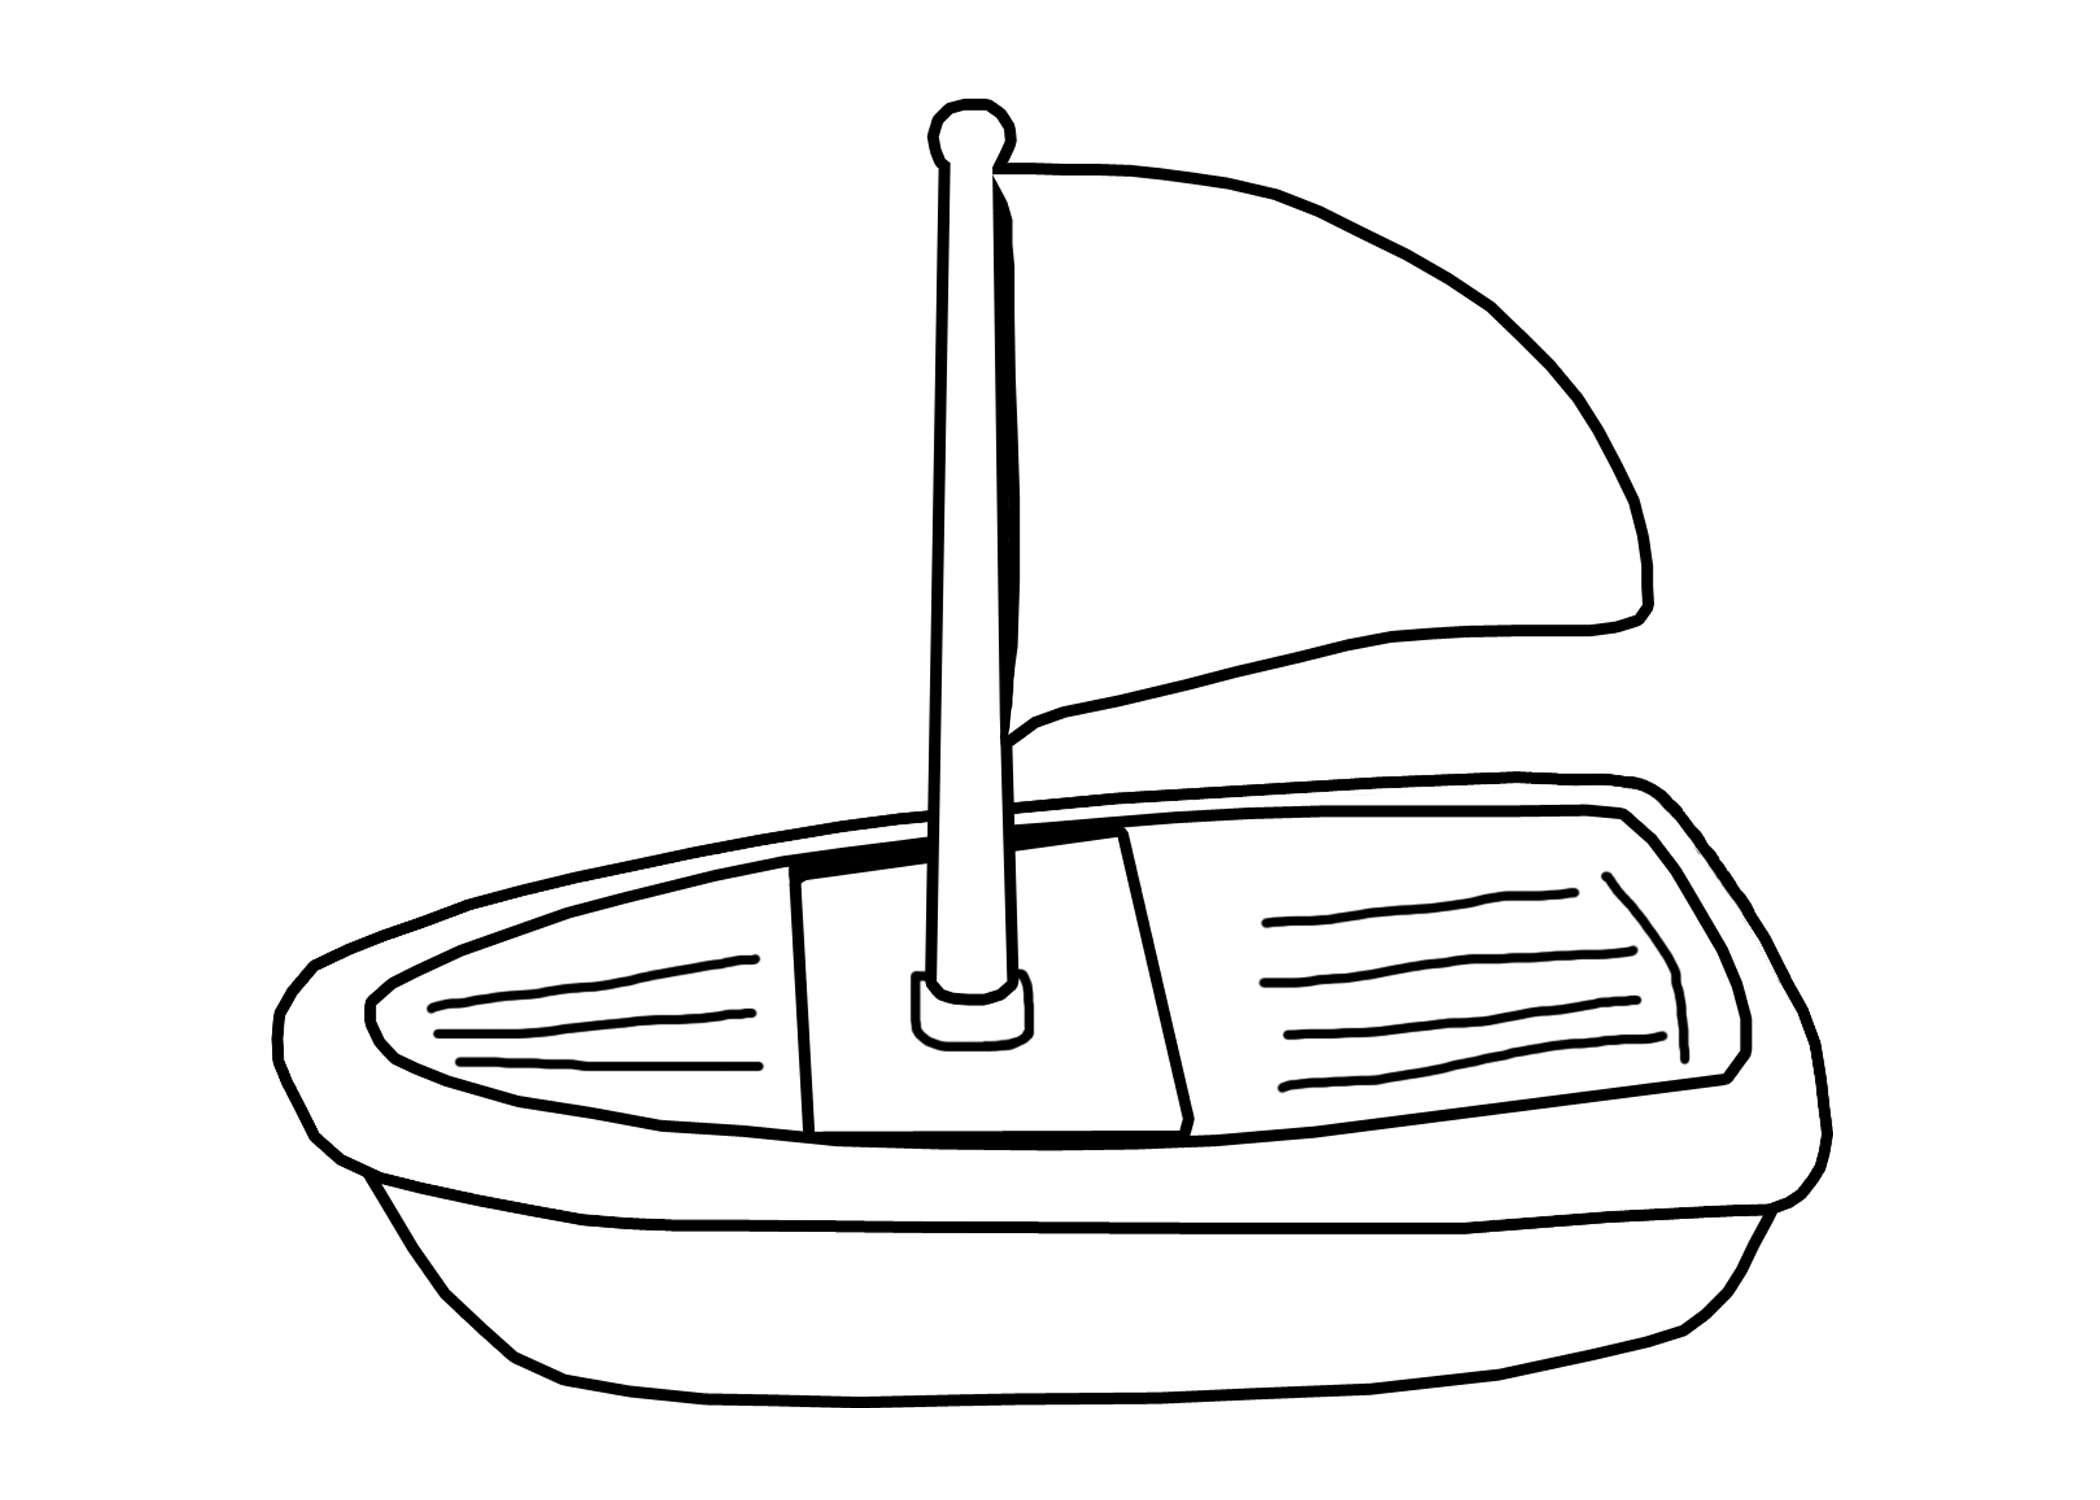 Toy boat clipart black and white.